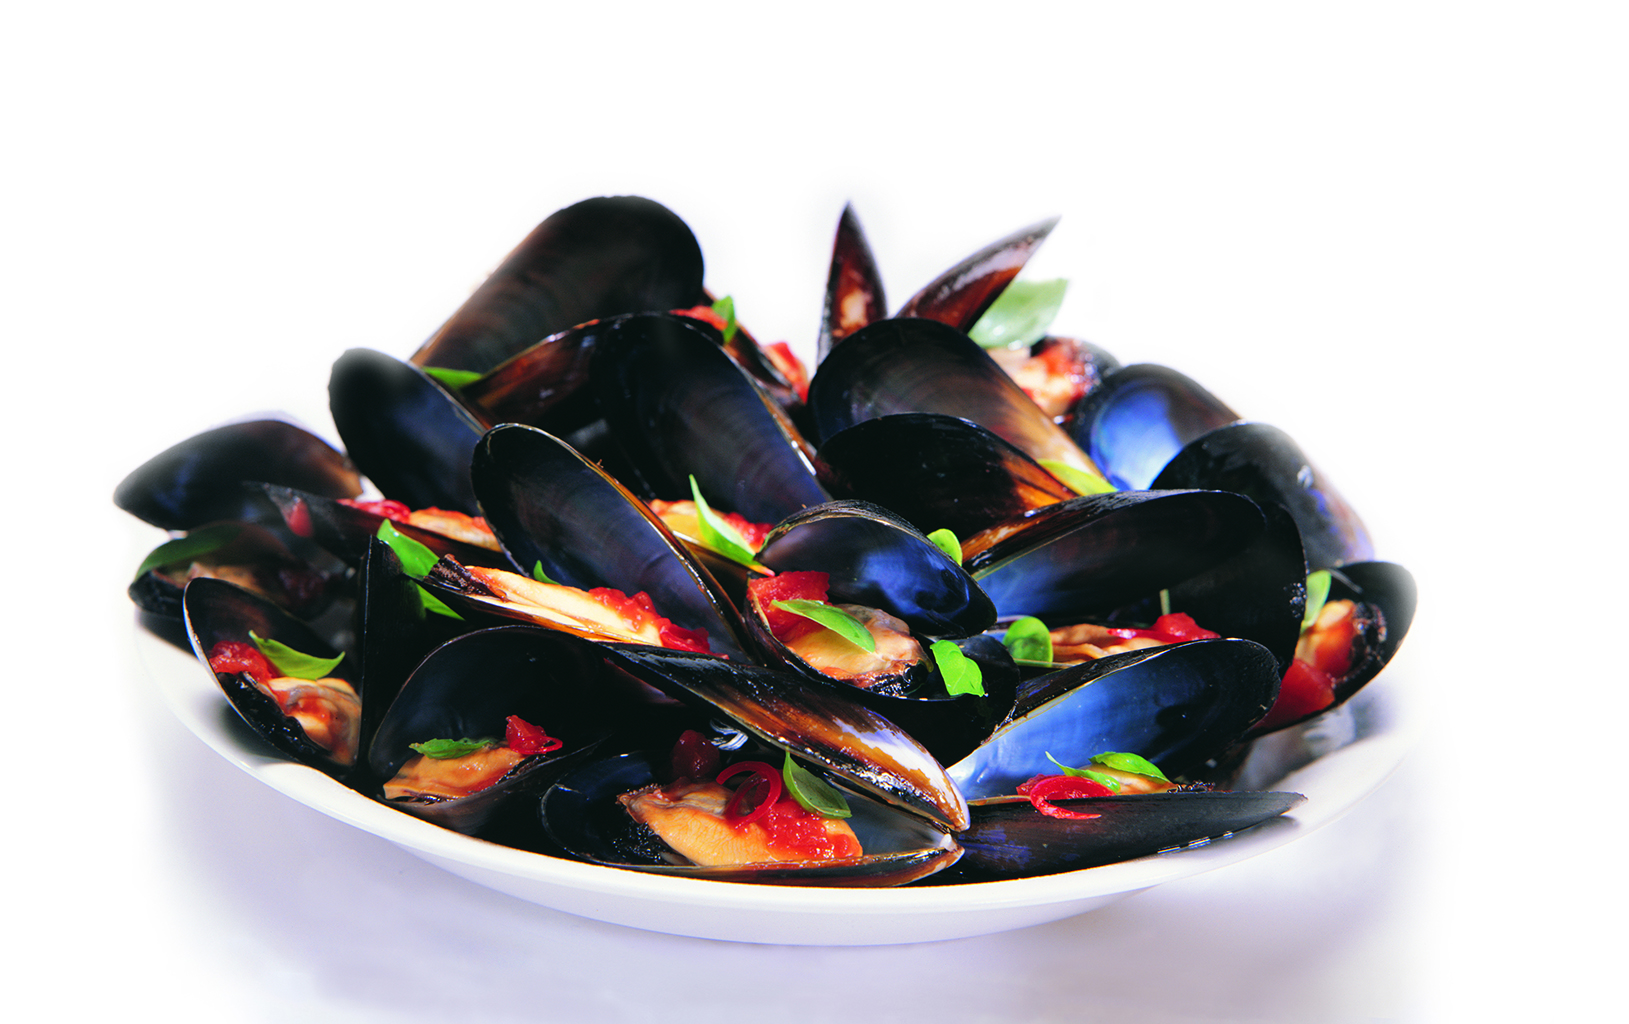 SeaBounty-mussels-web-image